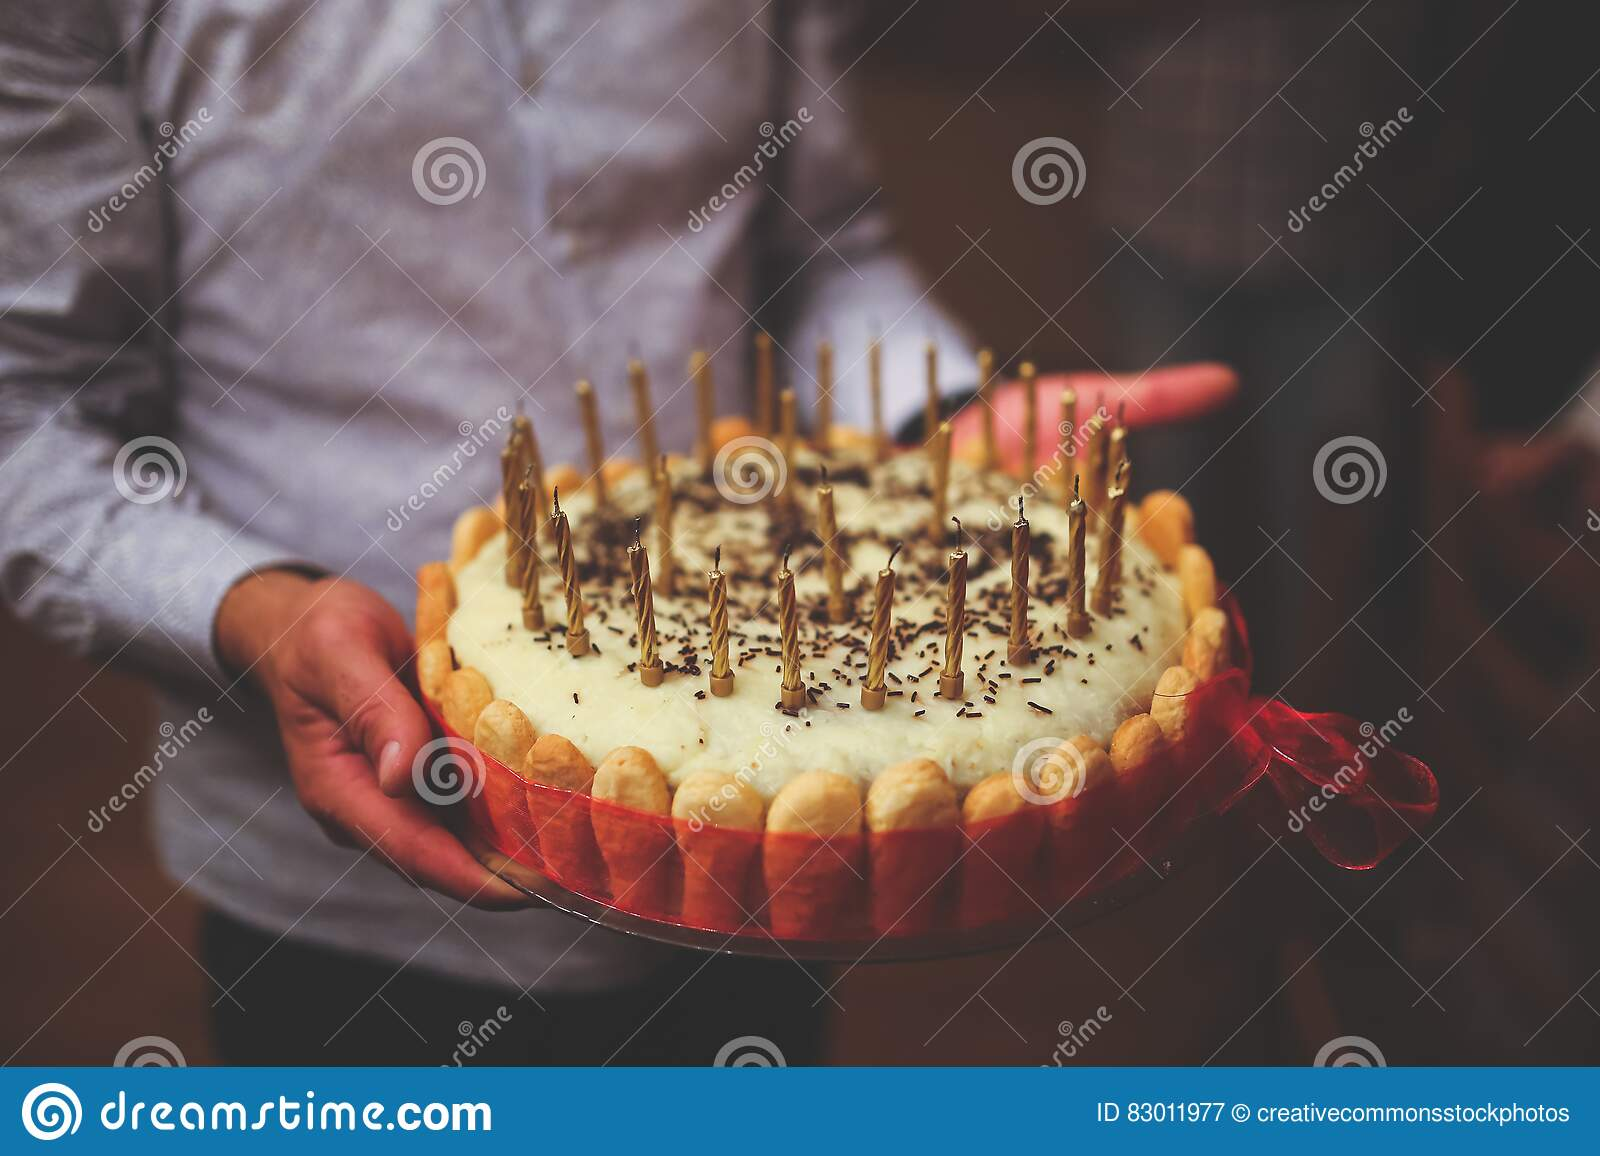 Awe Inspiring Birthday Cake In Mens Hands Picture Image 83011977 Funny Birthday Cards Online Hendilapandamsfinfo